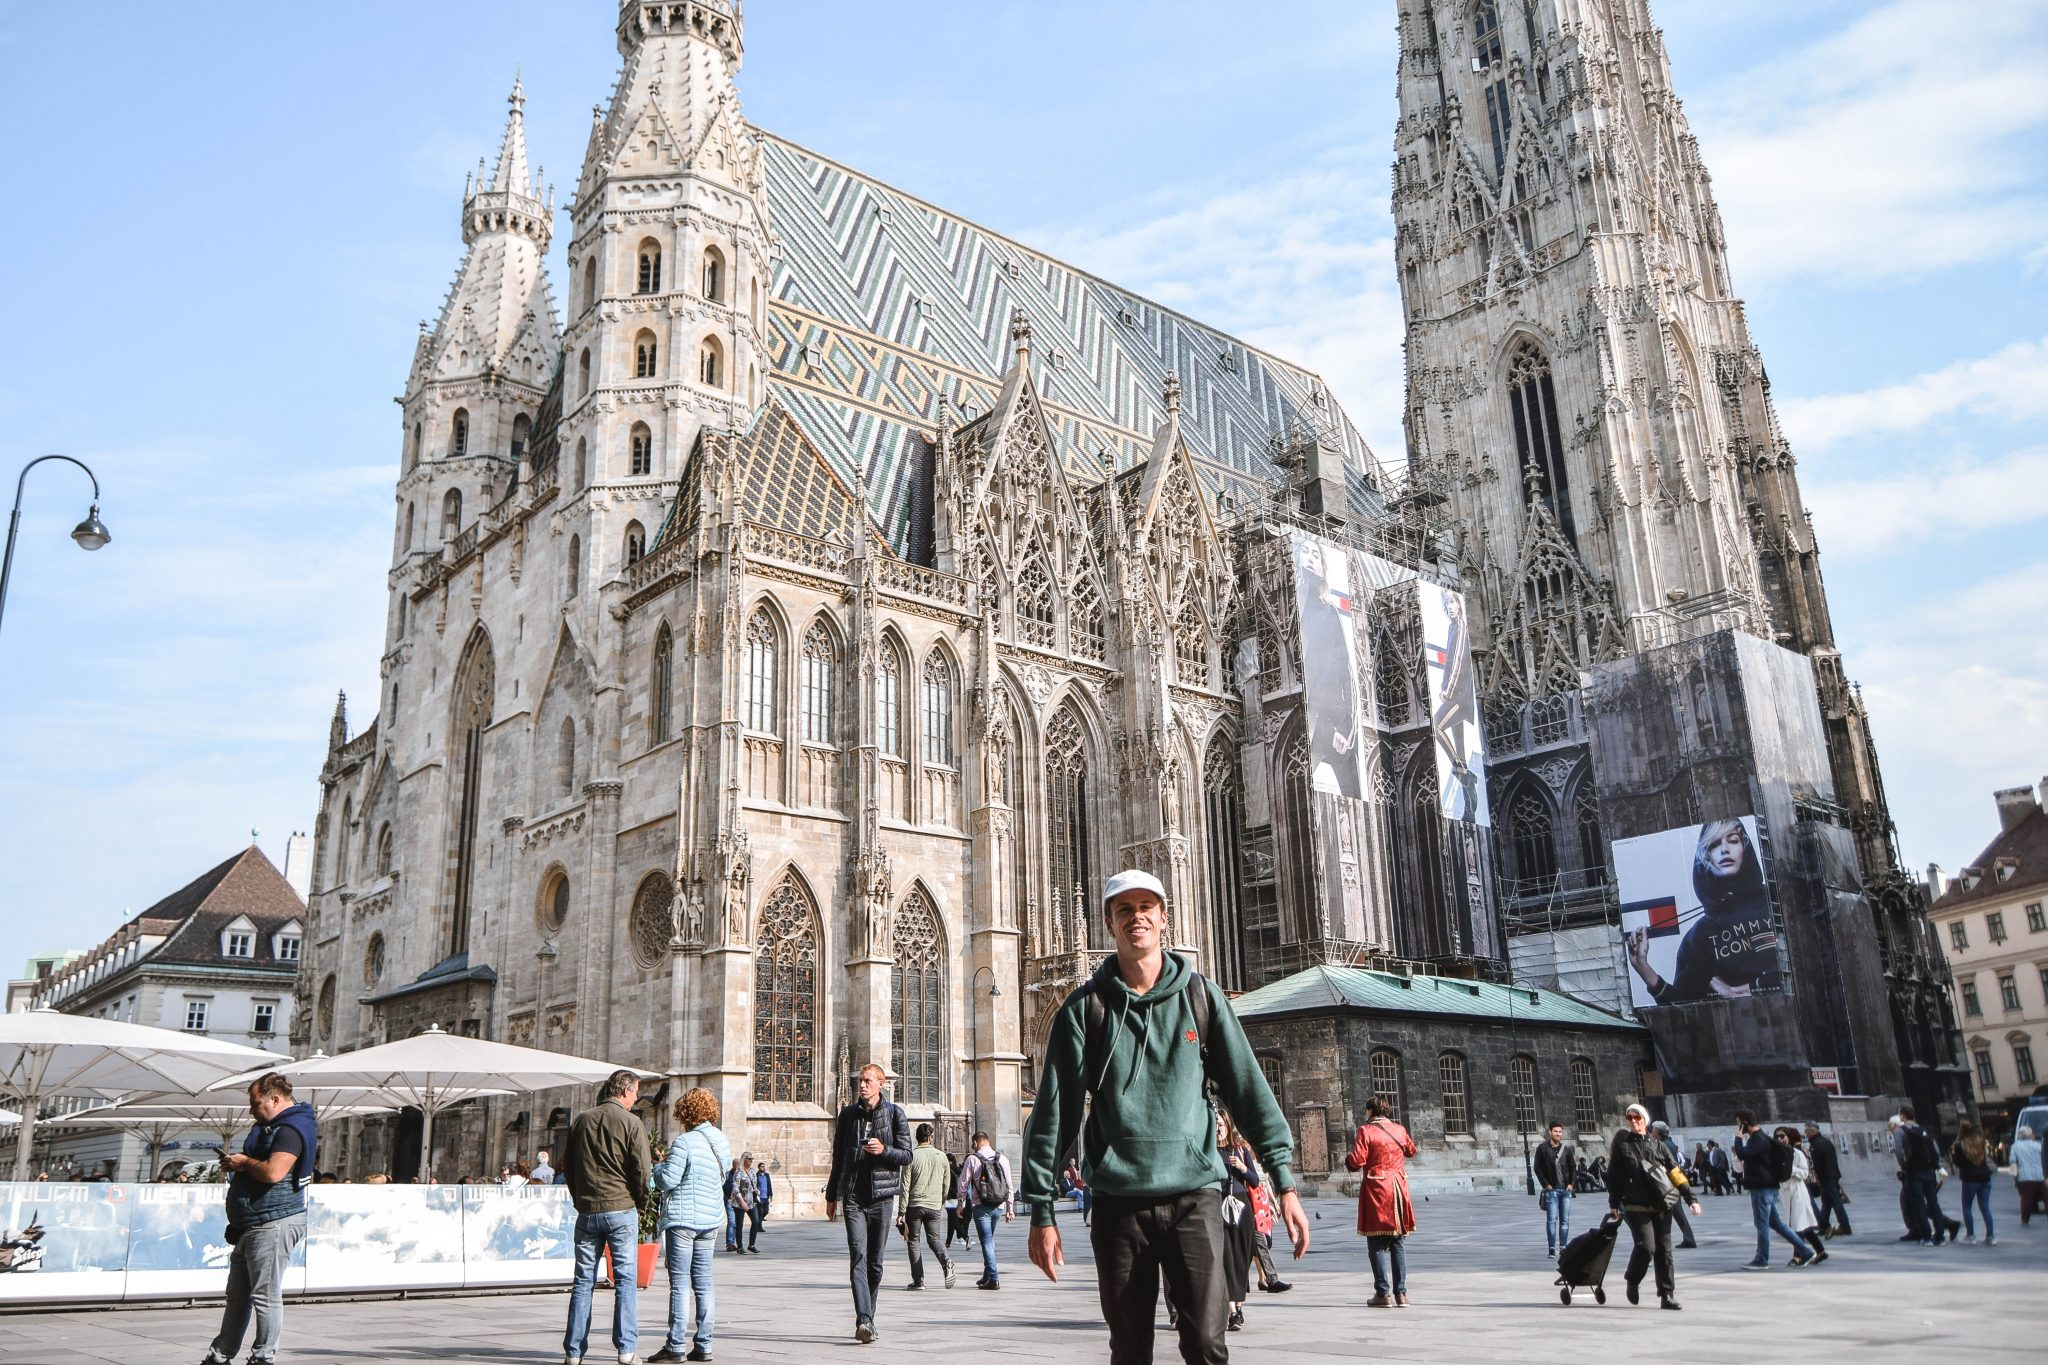 Wanderers & Warriors - Charlie & Lauren UK Travel Couple - St. Stephen's Cathedral Vienna In A Day - Things To Do In Vienna Itinerary 3 Days In Vienna 3 Day Itinerary Vienna 2 Day Itinerary